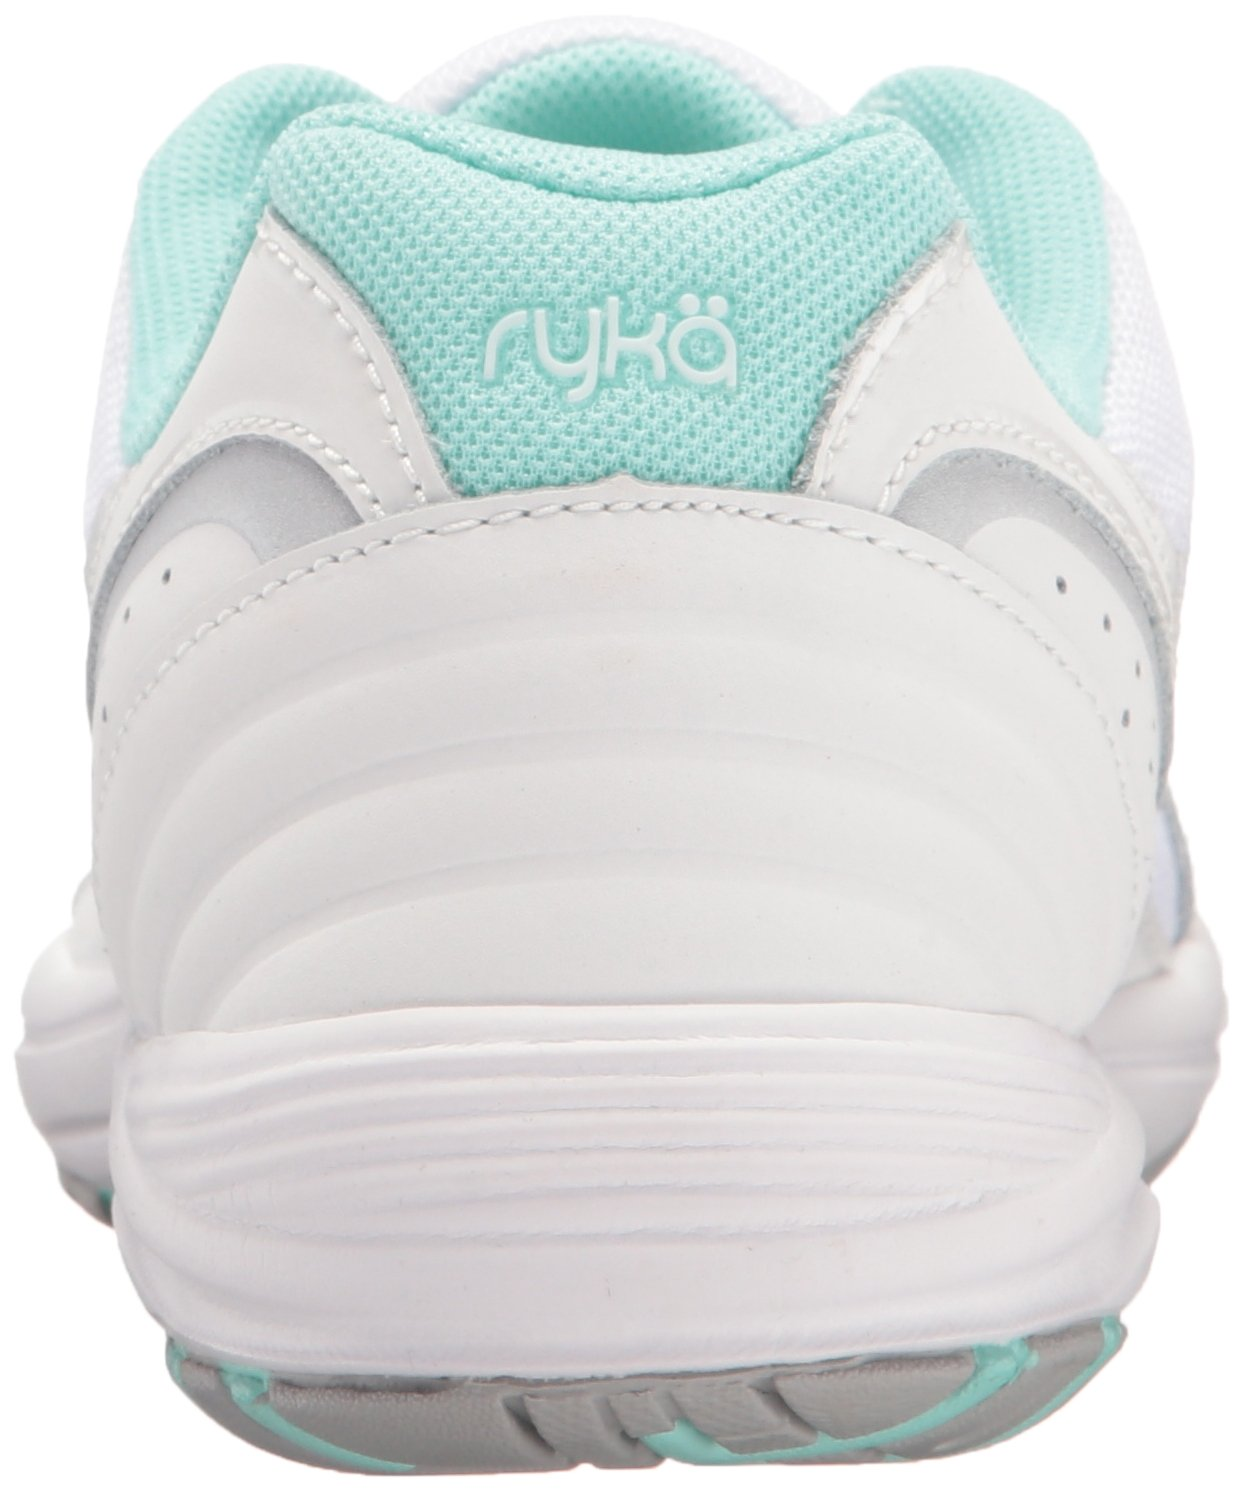 Ryka Women's Dash 3 Walking Shoe B01KWEX8JS 7 B(M) US|White/Silver/Mint